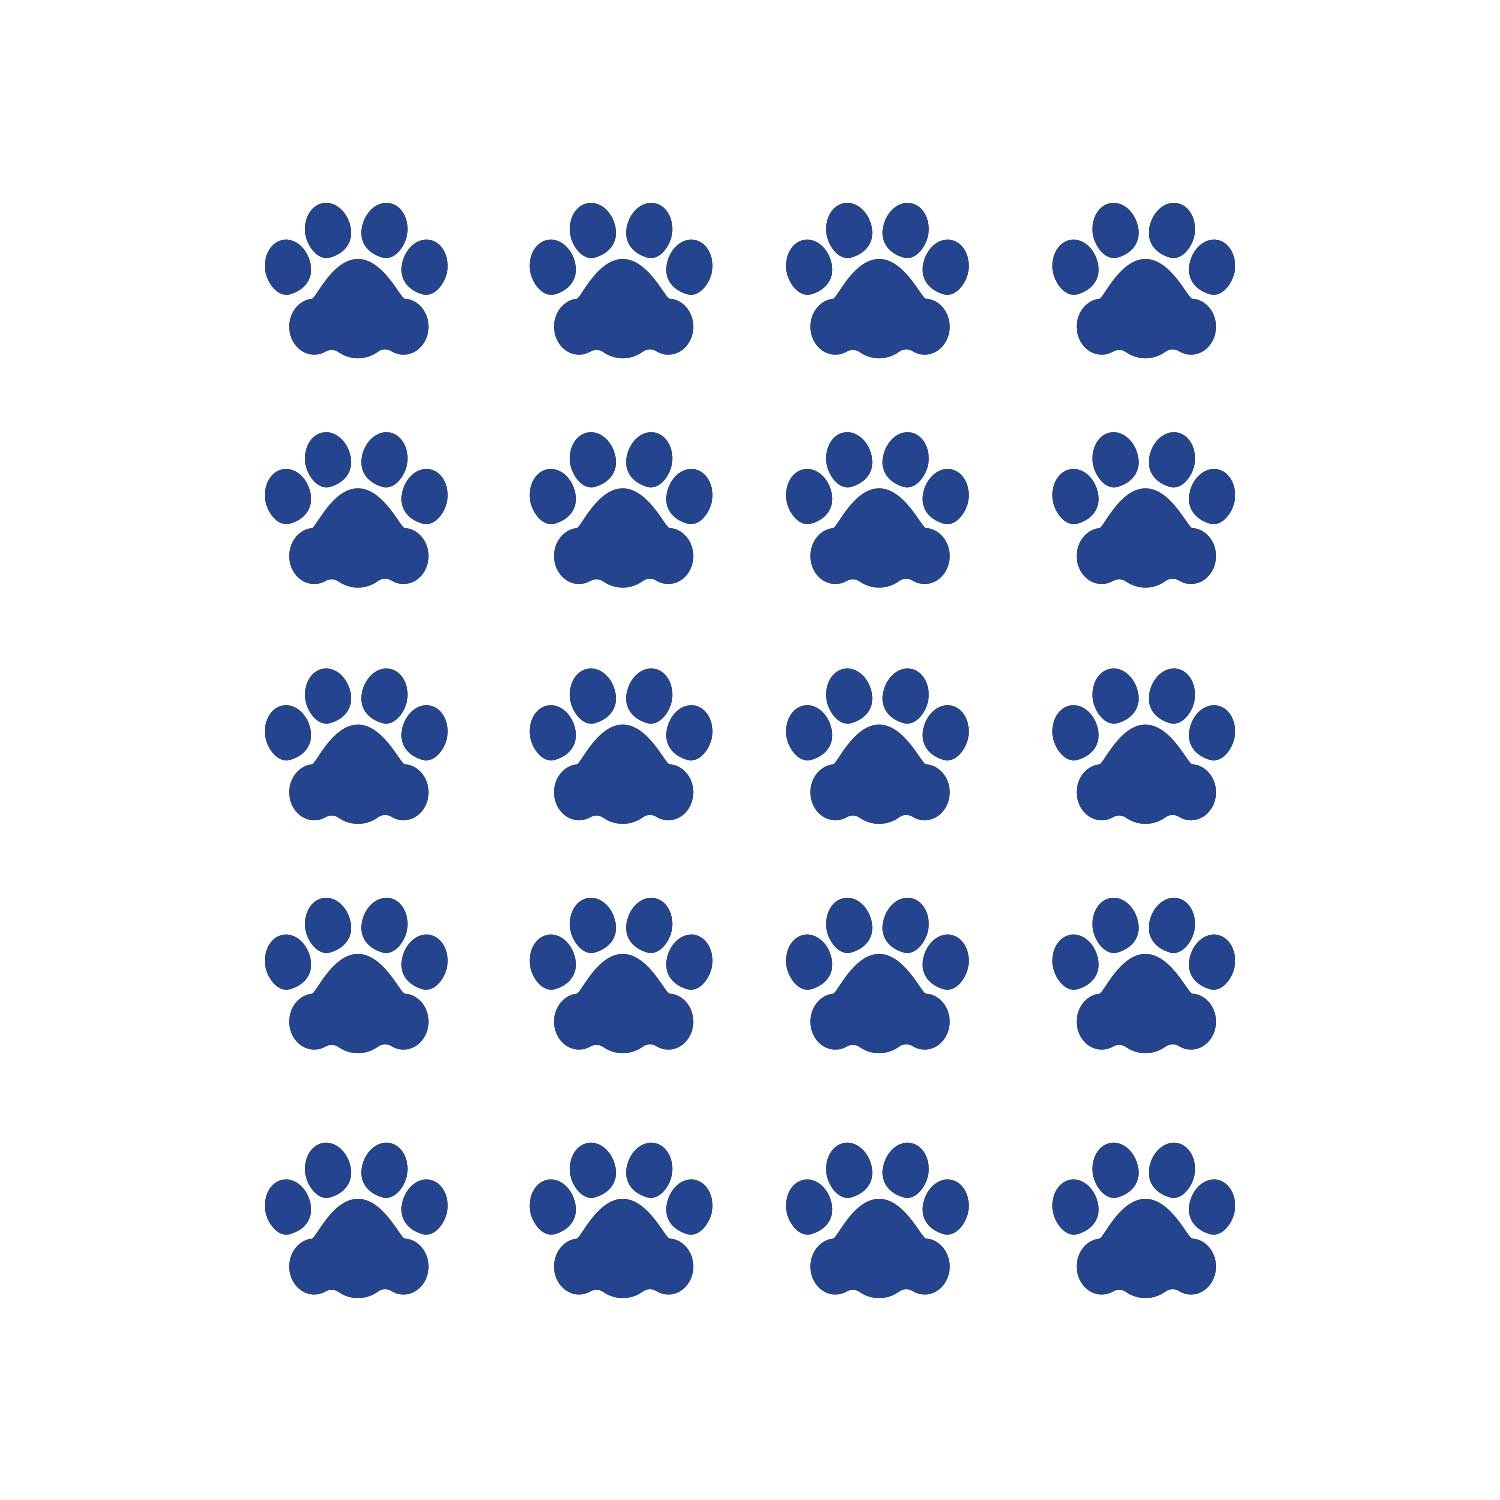 LiteMark 1 Inch Blue Removable Cat Paw Prints Decal Stickers for Floors and Walls - Pack of 60